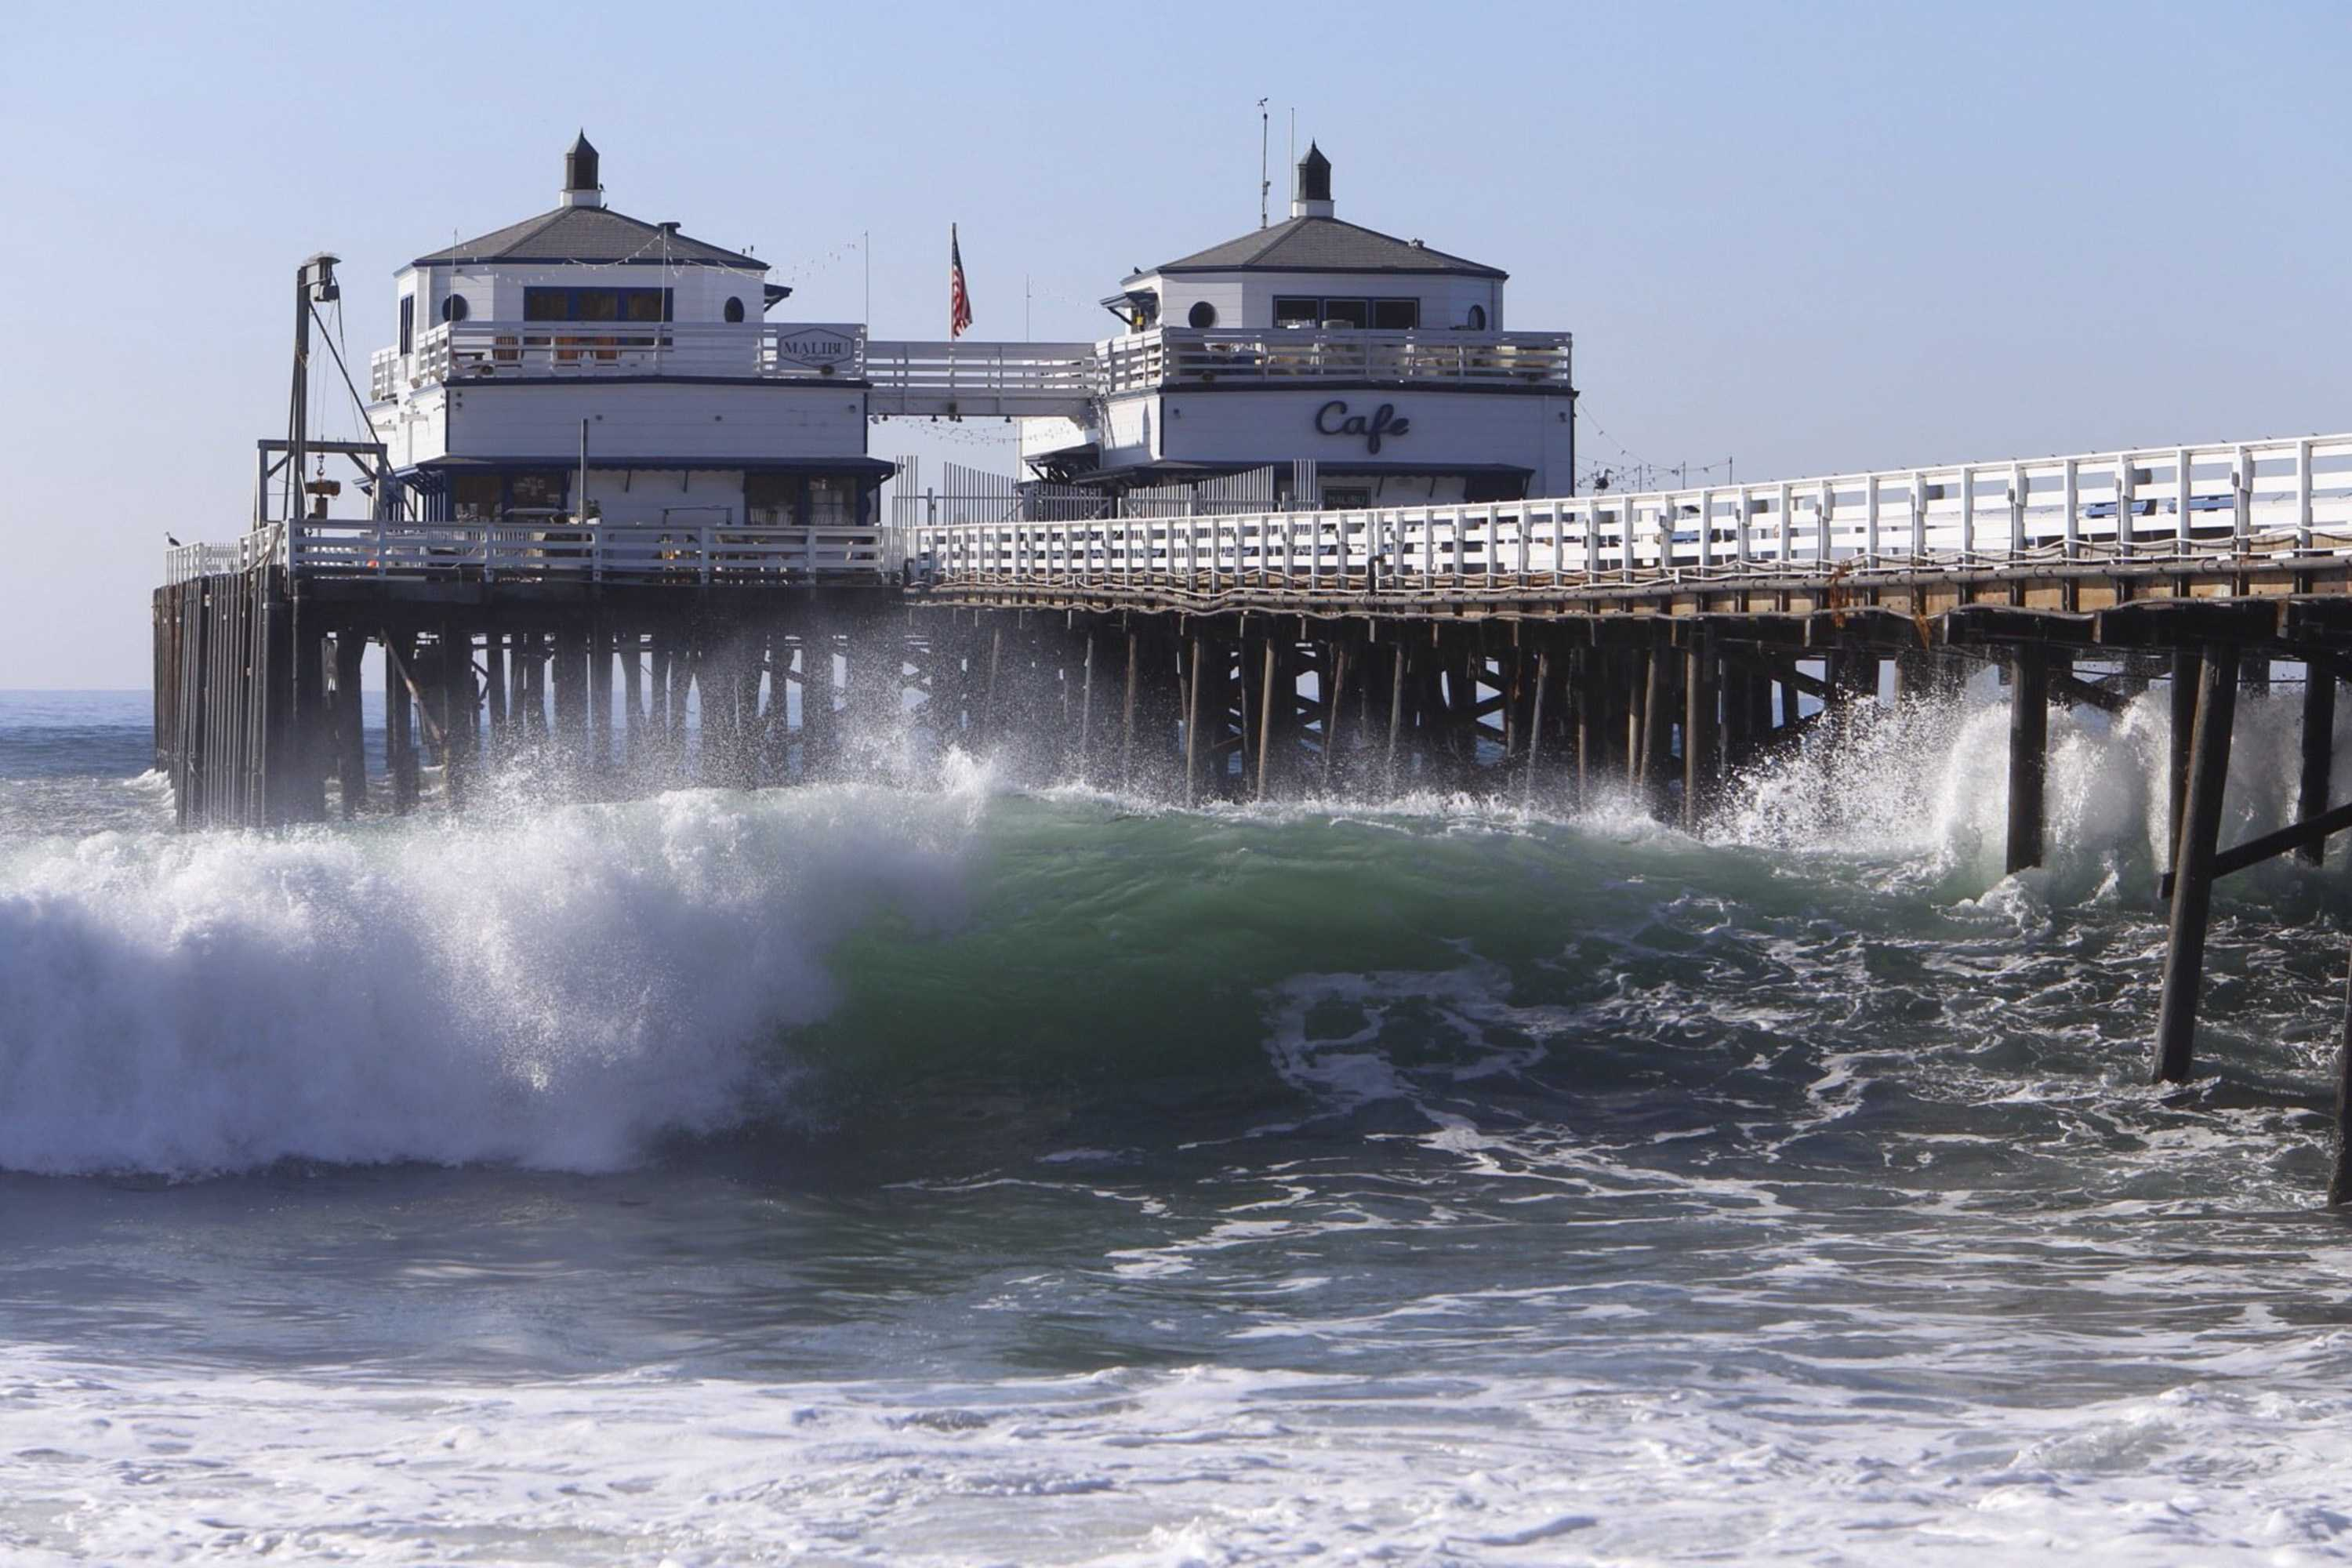 Huge swells generated by Hurricane Marie pound the Malibu Pier on Aug. 27, 2014, producing eye-popping waves for the bravest of surfers, while at the same time putting low-lying seaside communities at significant risk of flooding and beach erosion. A trio of new lawsuits are aimed at forcing the world's largest oil companies to pay for the projected effects of rising seas along California's coast. (Al Seib/Los Angeles Times/TNS)